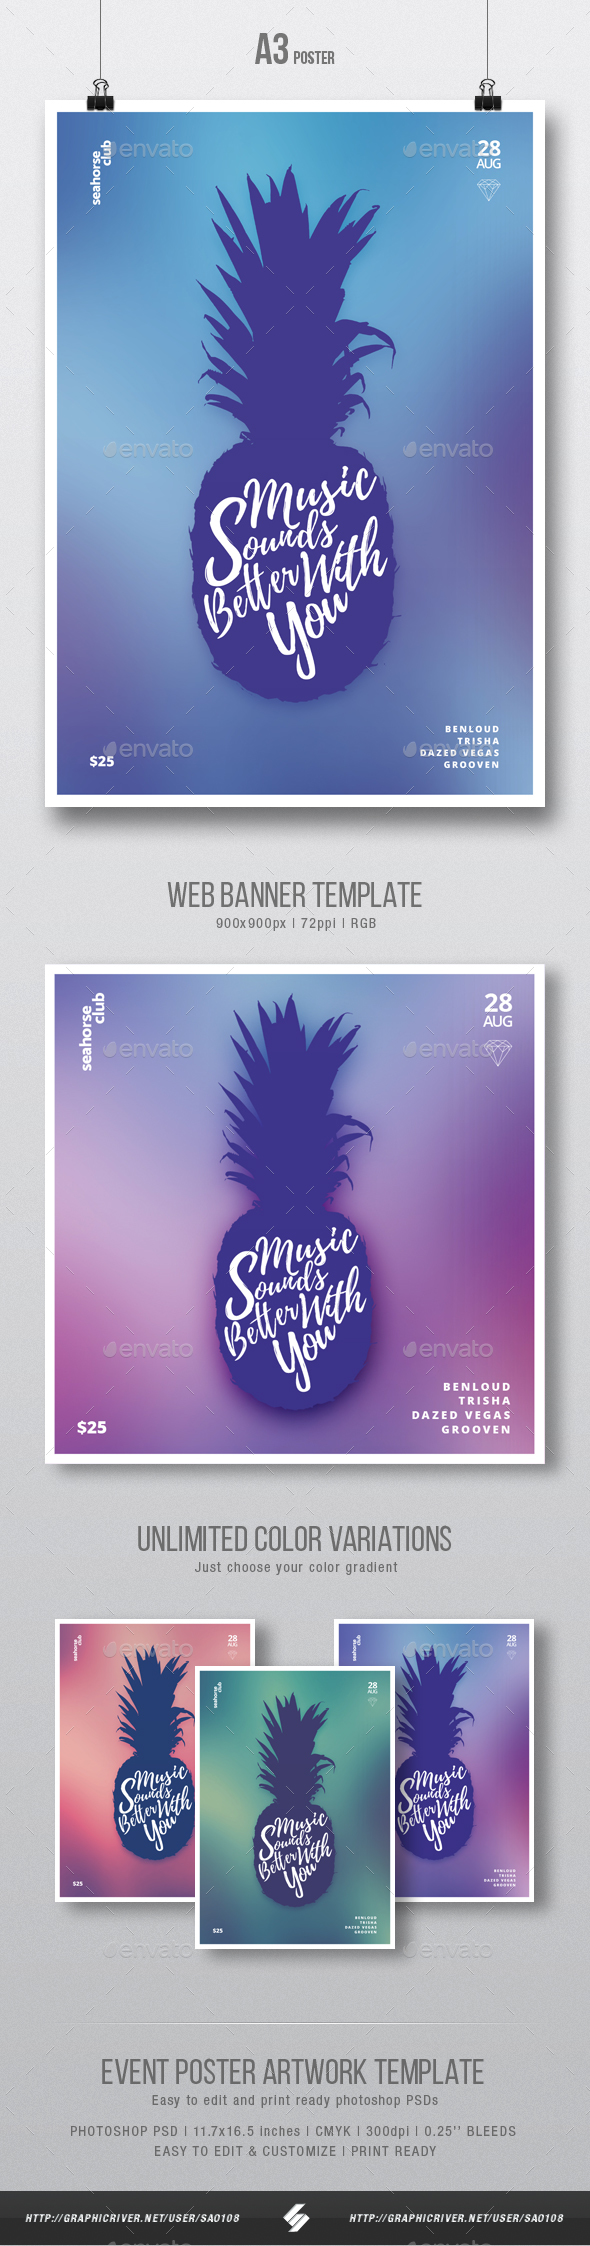 GraphicRiver Summer House Music Minimal Party Flyer Poster Template A3 21184426